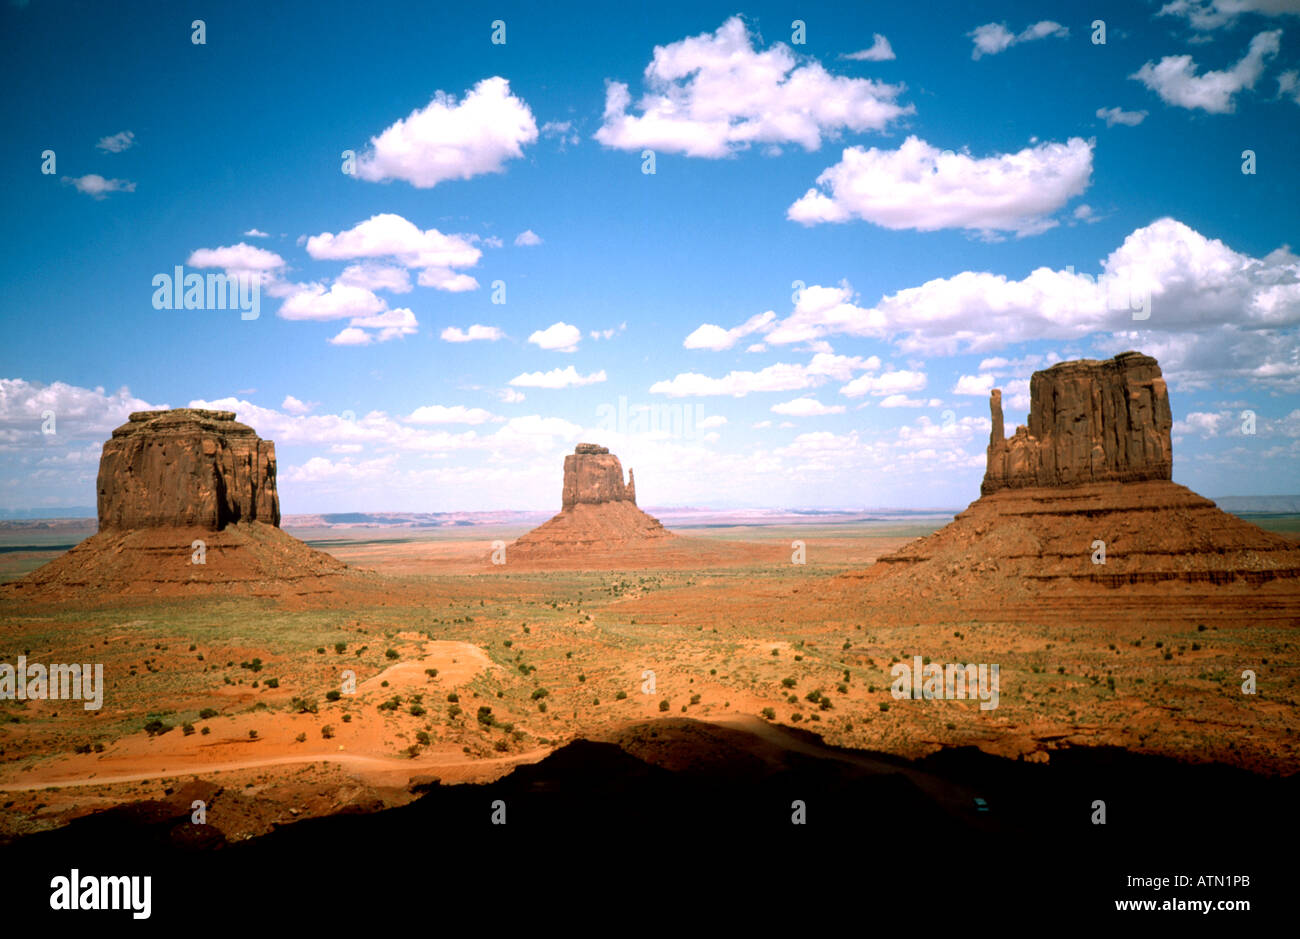 Monument Valley in USA - Stock Image